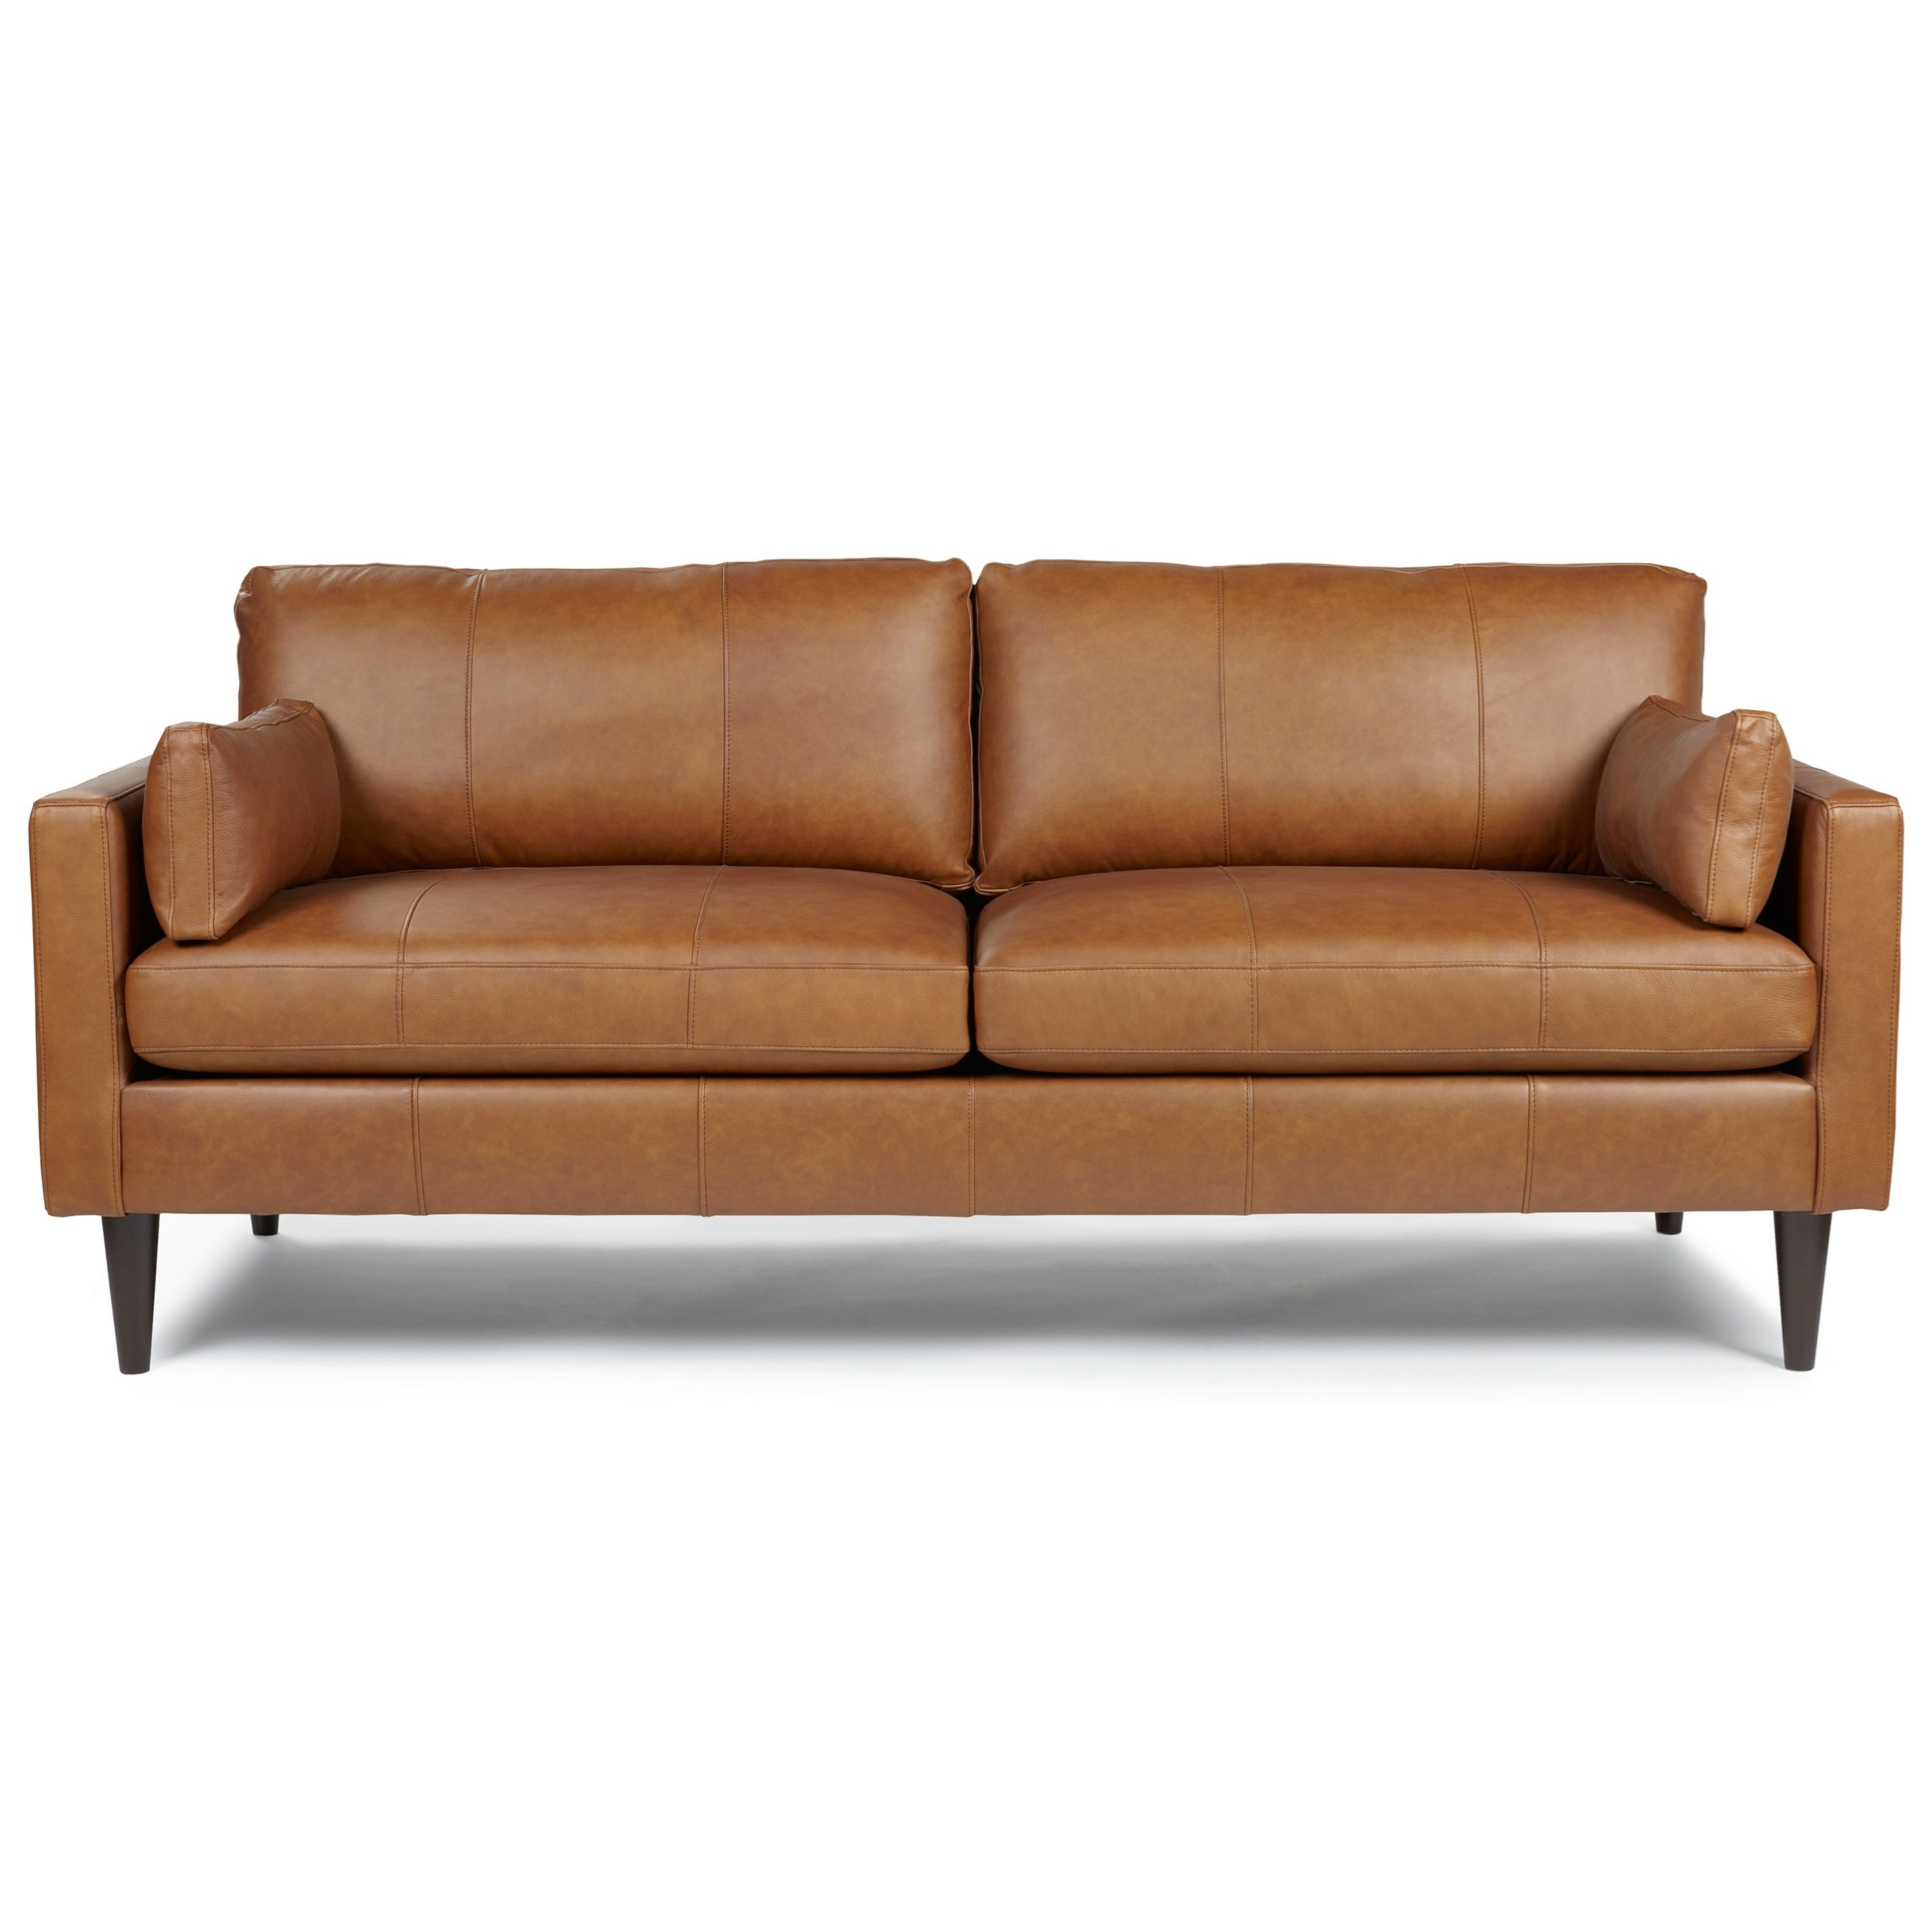 Trafton Sofa by Best Home Furnishings at Baer's Furniture